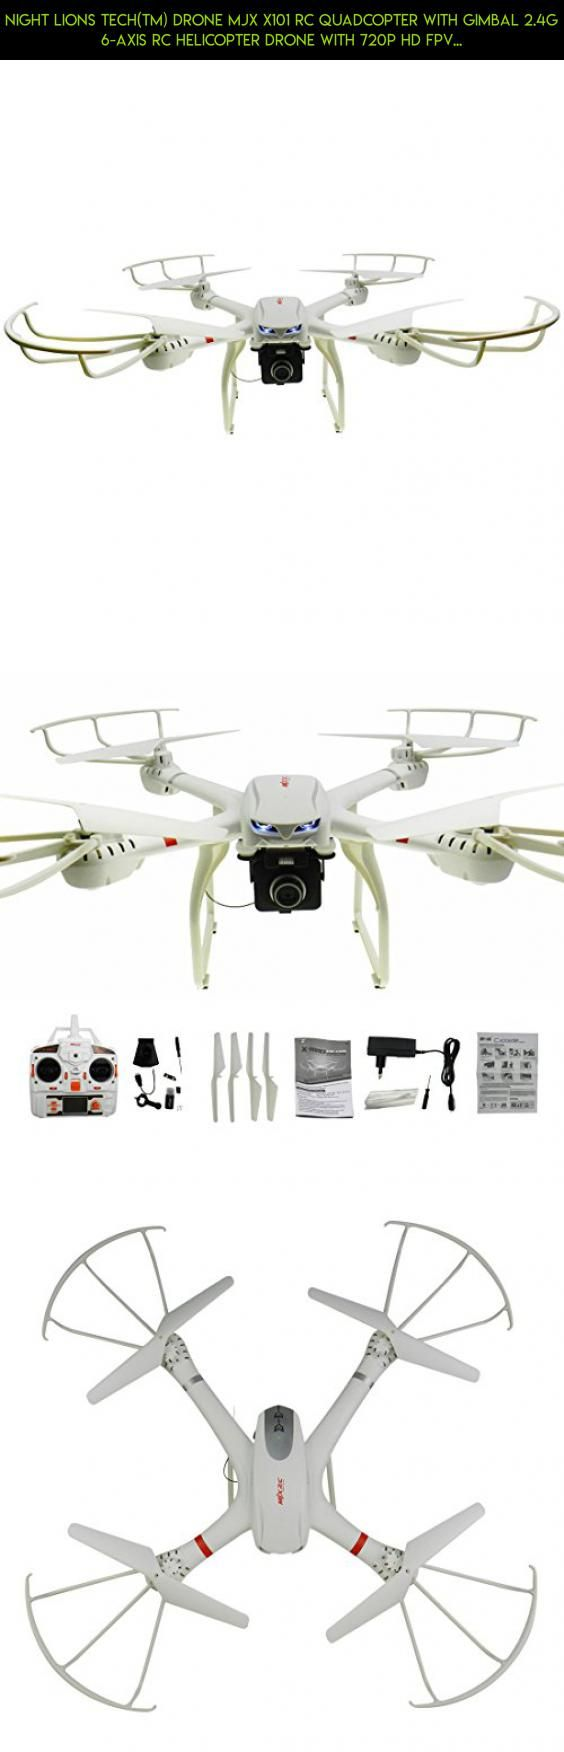 NiGHT LiONS TECH(TM) Drone MJX X101 RC Quadcopter with Gimbal 2.4g 6-axis Rc Helicopter Drone with 720p HD FPV Real-Time C4008 Camera Compatible with 3D Roll Quadcopter #gadgets #kit #technology #tech #mjx #c4008 #racing #camera #drone #parts #shopping #products #plans #camera #fpv